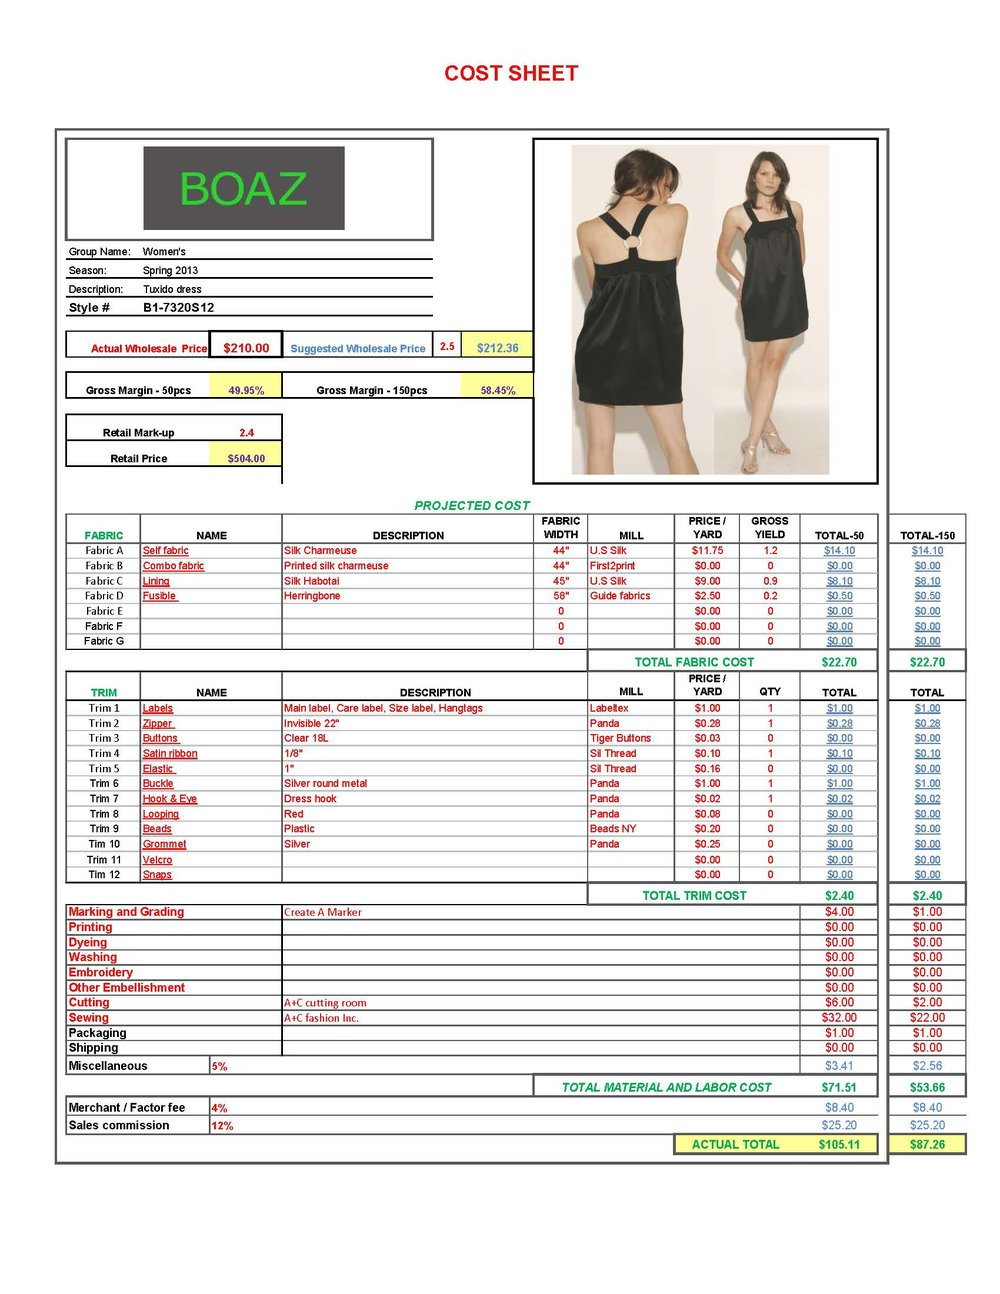 Cost sheet form - TEMPLATE 2016.jpg